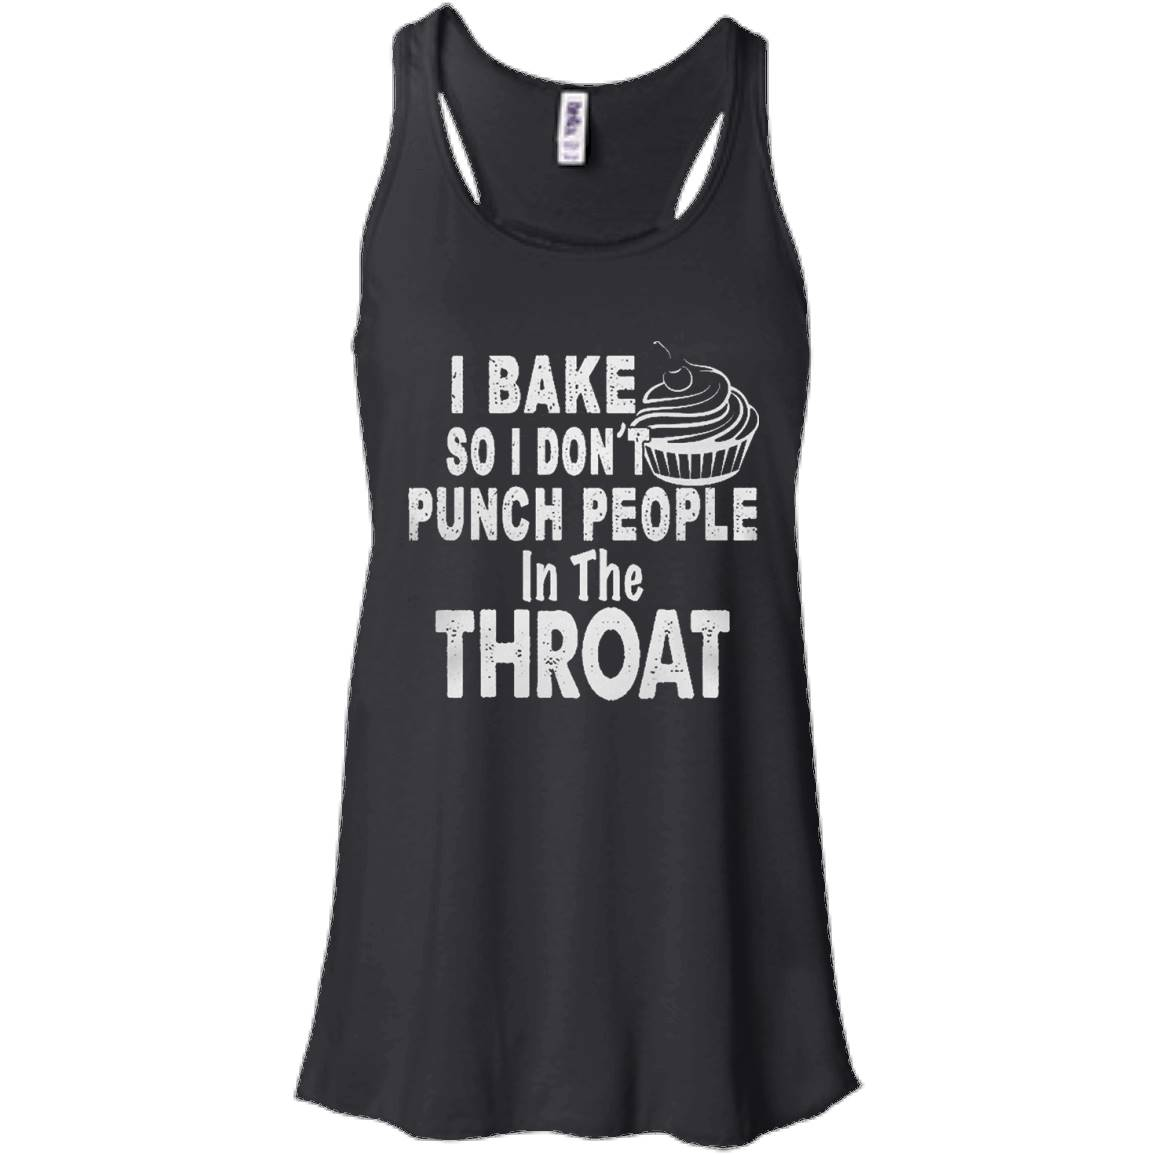 I Bake So I Don't Punch People In The Throat T Shirt – Women Tank